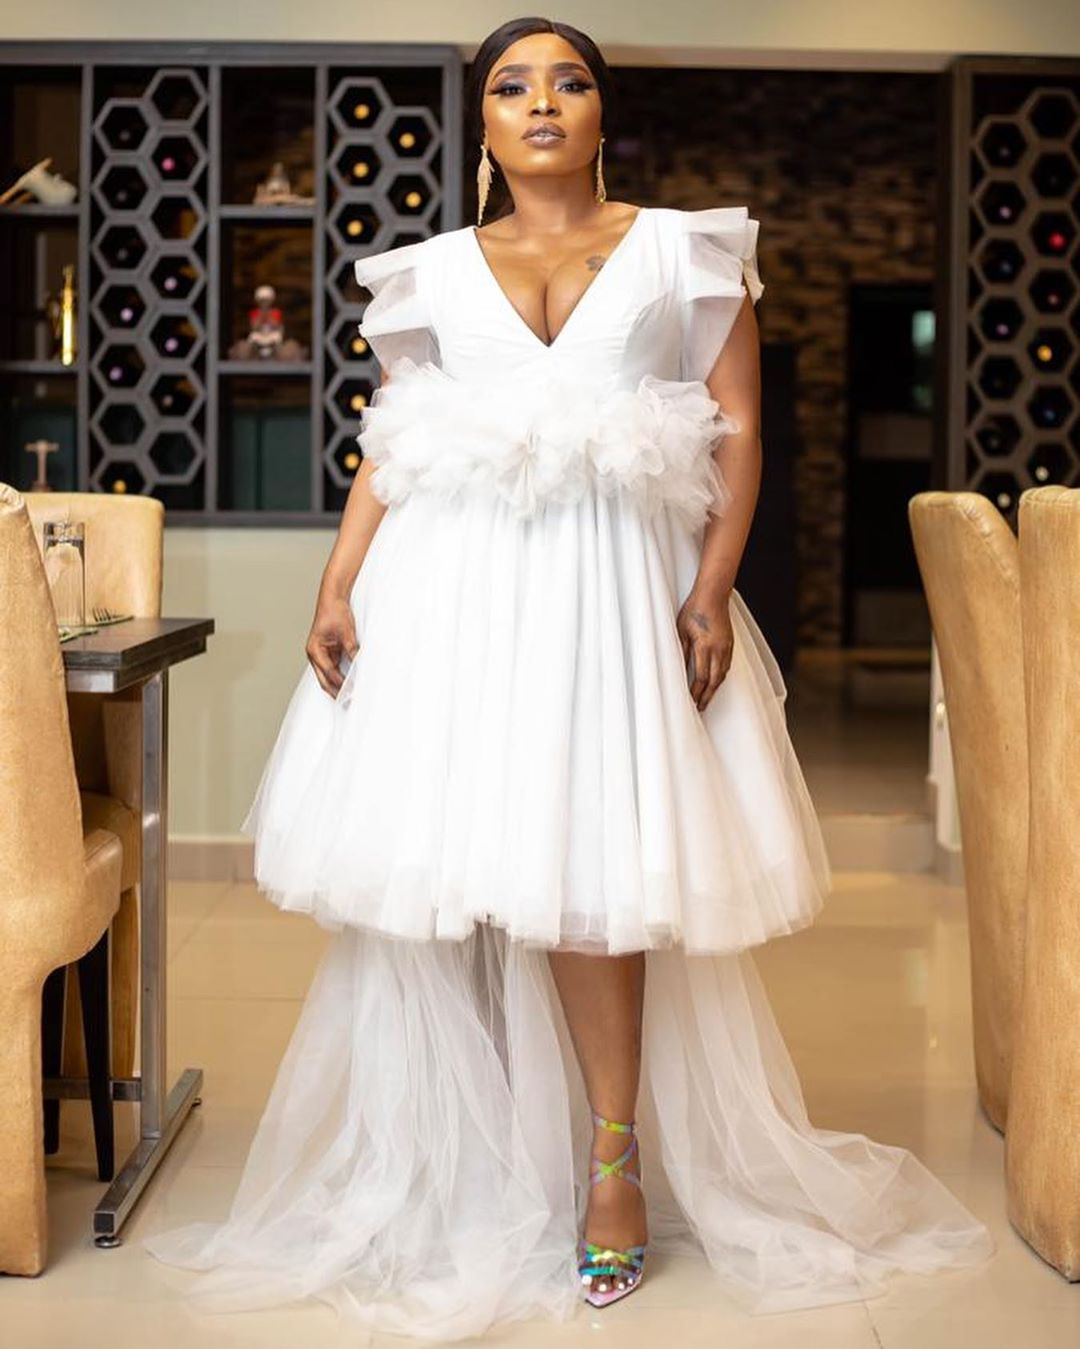 Halima Abubakar Vows To Expose Secrets That Can Destroy Marriages In Nollywood